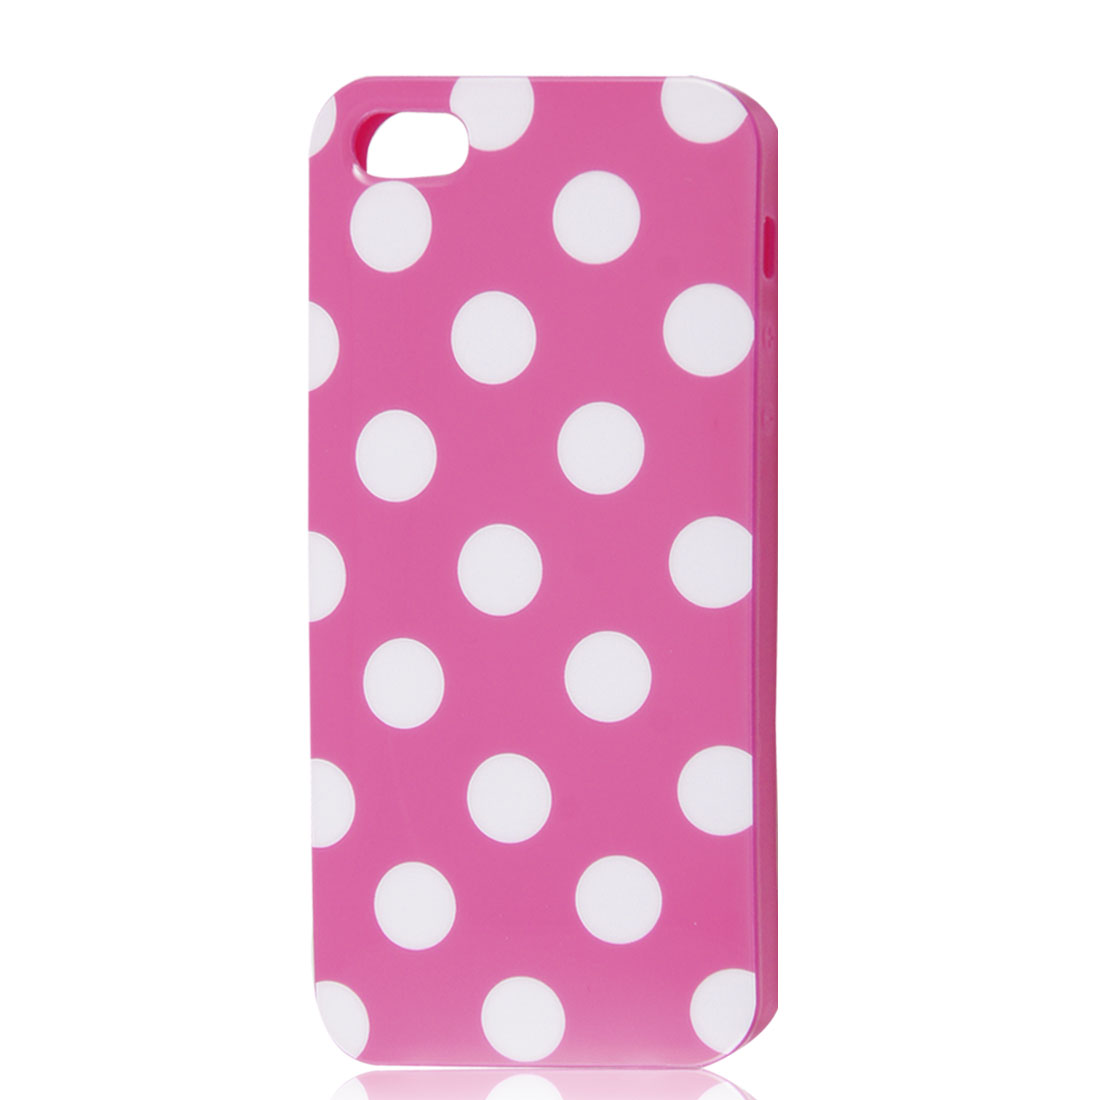 White Polka Dots Fuchsia Soft Plastic Case Cover for Apple iPhone 5 5G